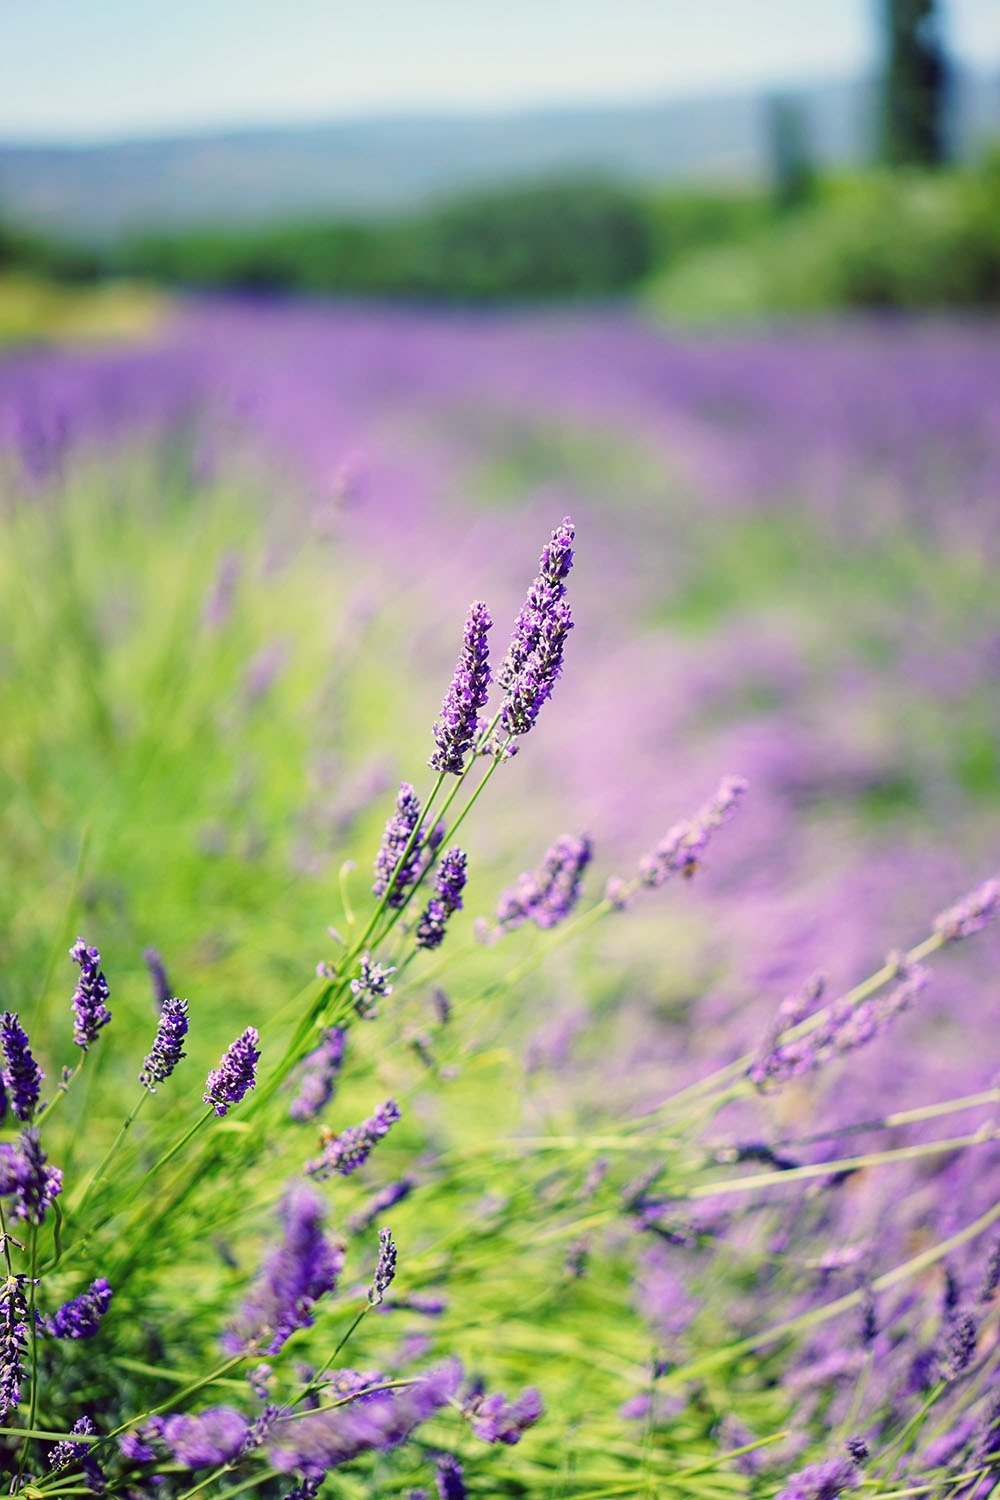 Fancy a frolic in Provence's lavender fields? Or perhaps a stroll through Roman ruins and medieval communes? Soak in the sunshine and beauty of Southern France in this essential road trip itinerary that goes from Languedoc to Provence through charming villages, floral fields, and bendy mountain roads. Here are 5 amazing road trips you'd love to take in France.